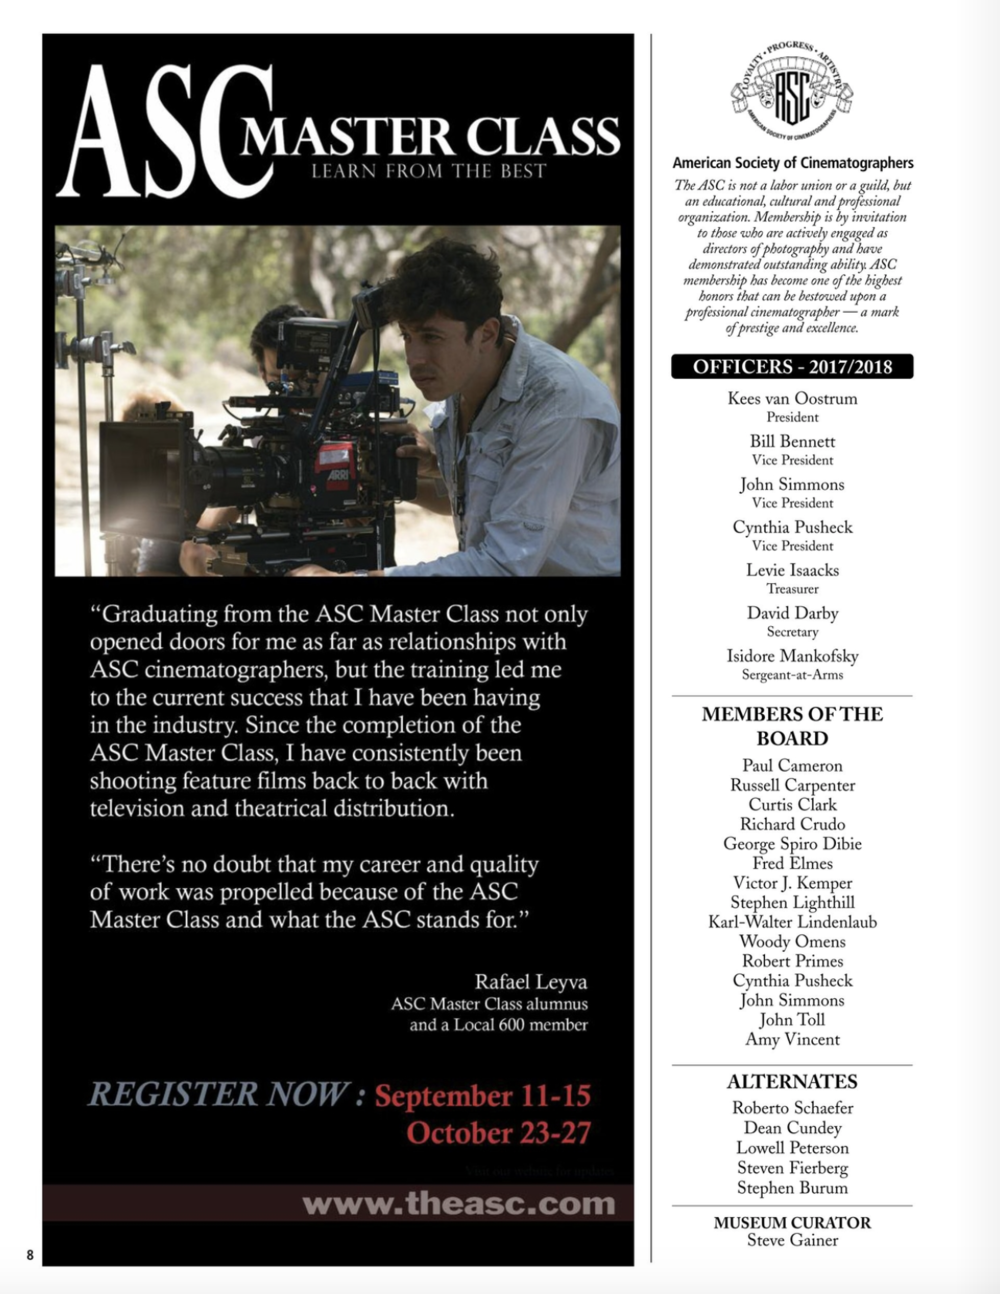 ASC MAGAZINE - SEPTEMBER ISSUE 2017